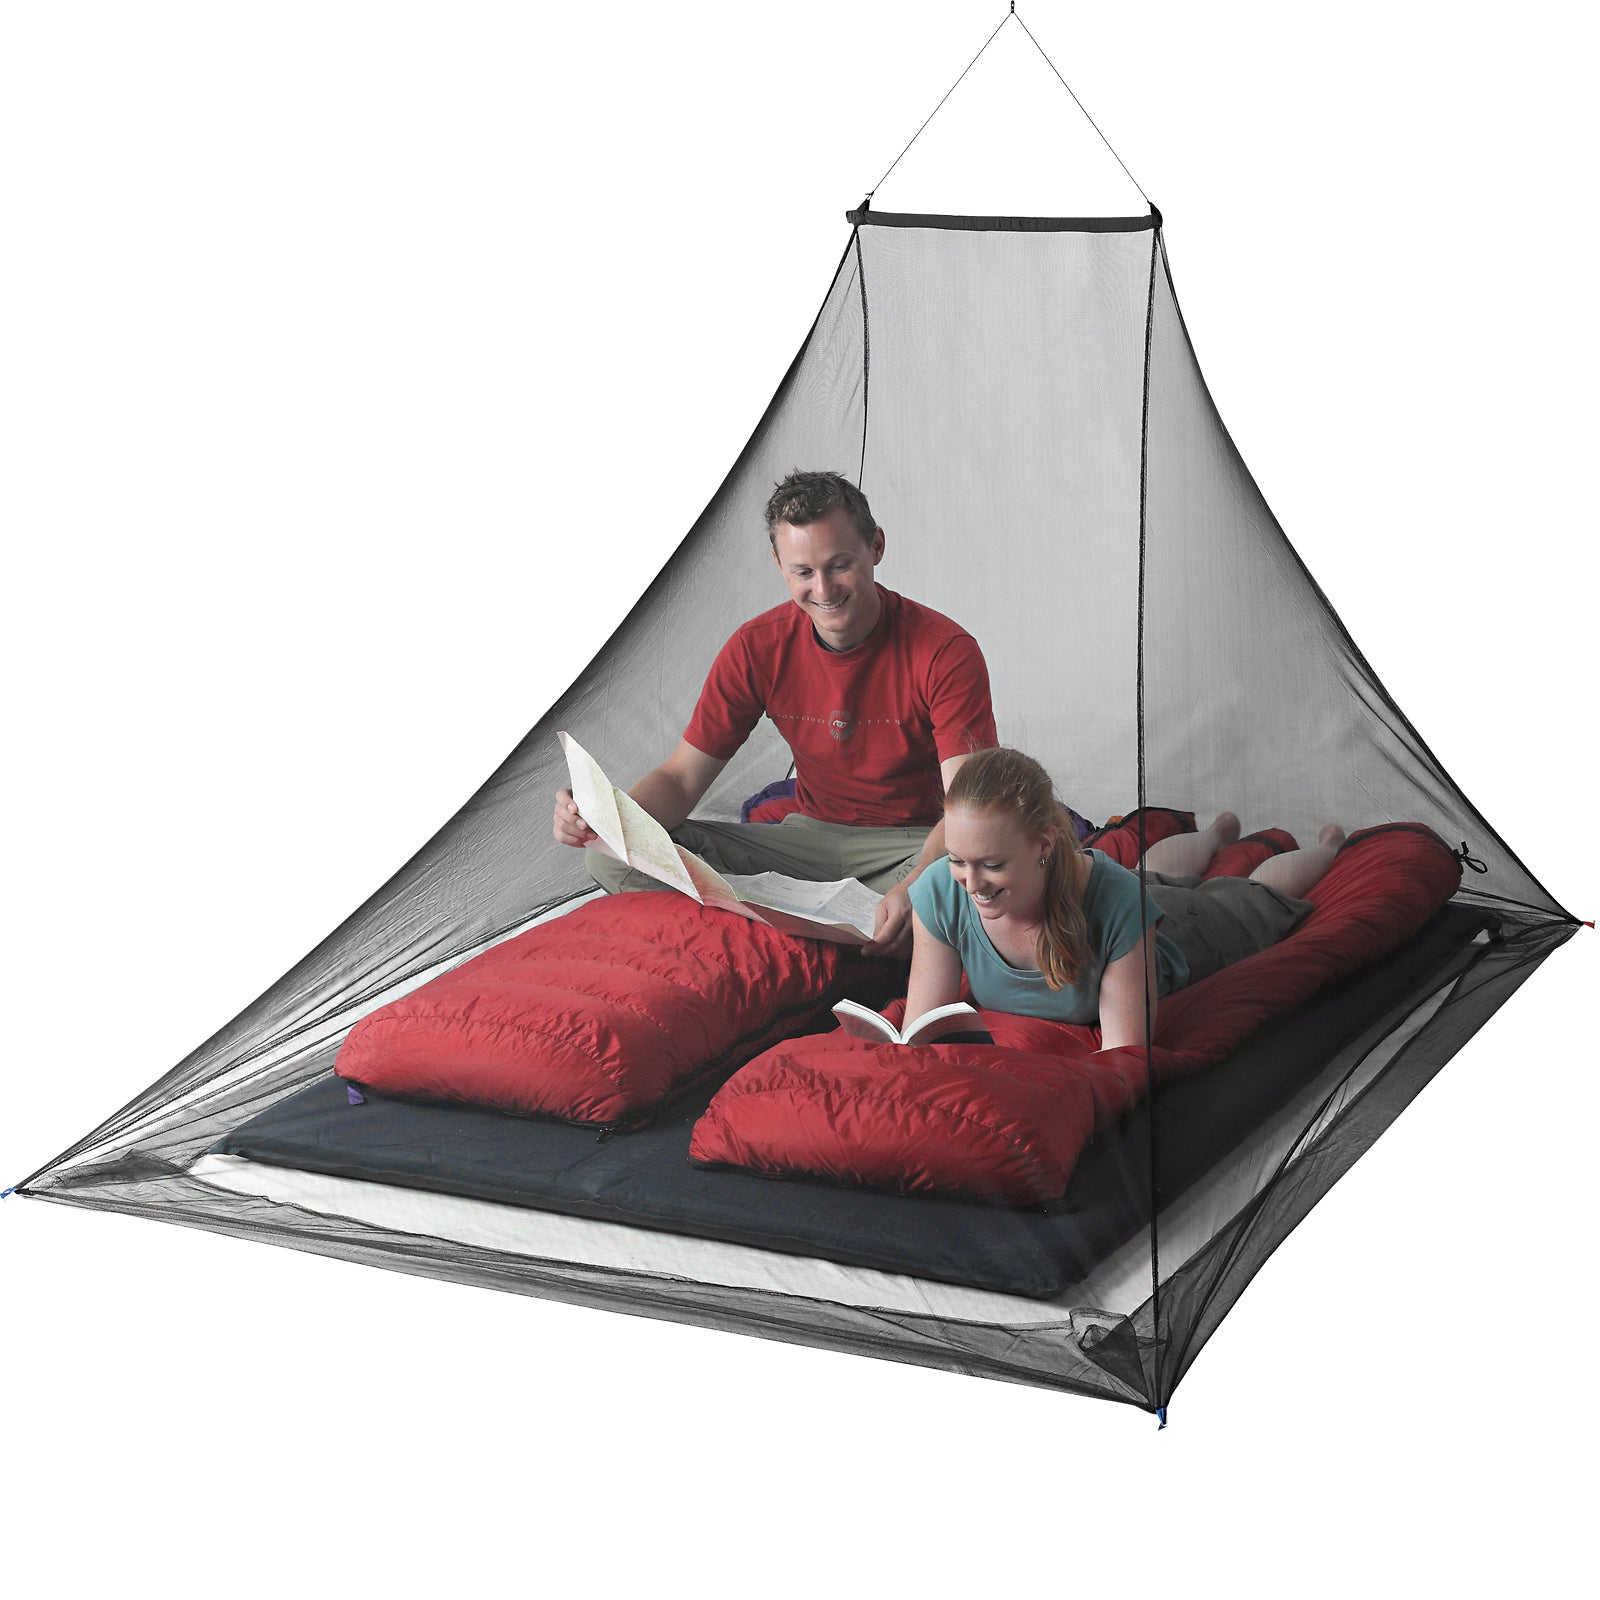 Mosquito Pyramid Net Shelter _ portable mosquito net _ insect shield _ double